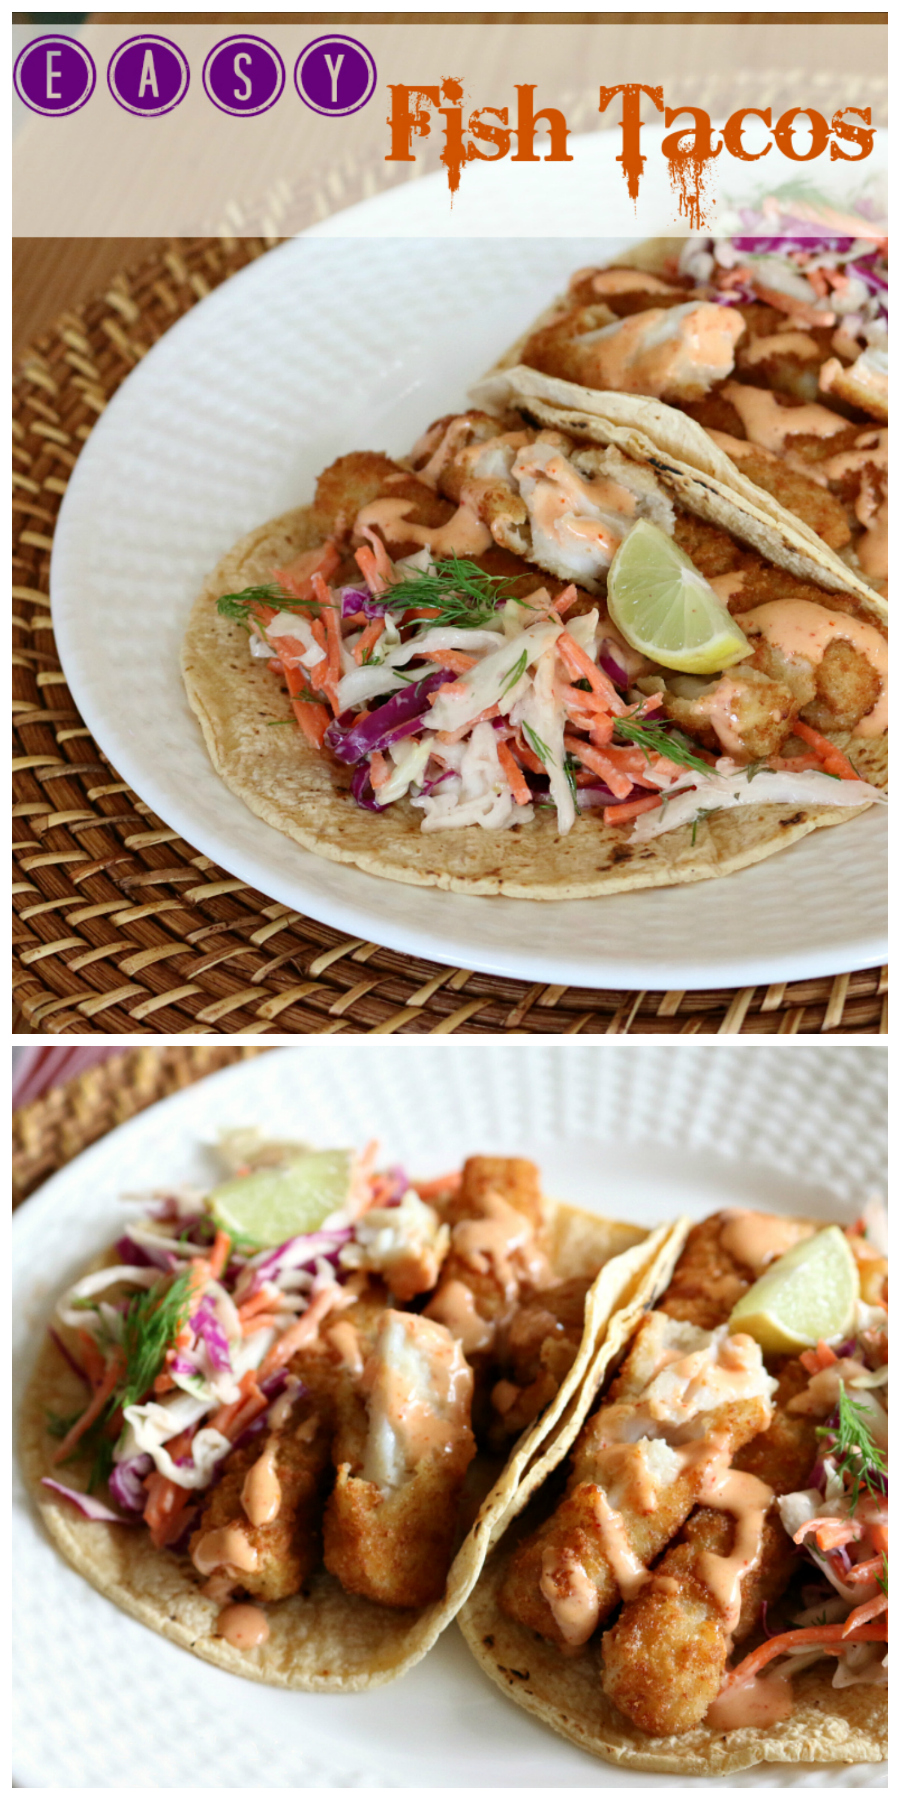 Simple Fish Tacos with Chipotle Crema | CeceliasGoodStuff.com | Good Food for Good People